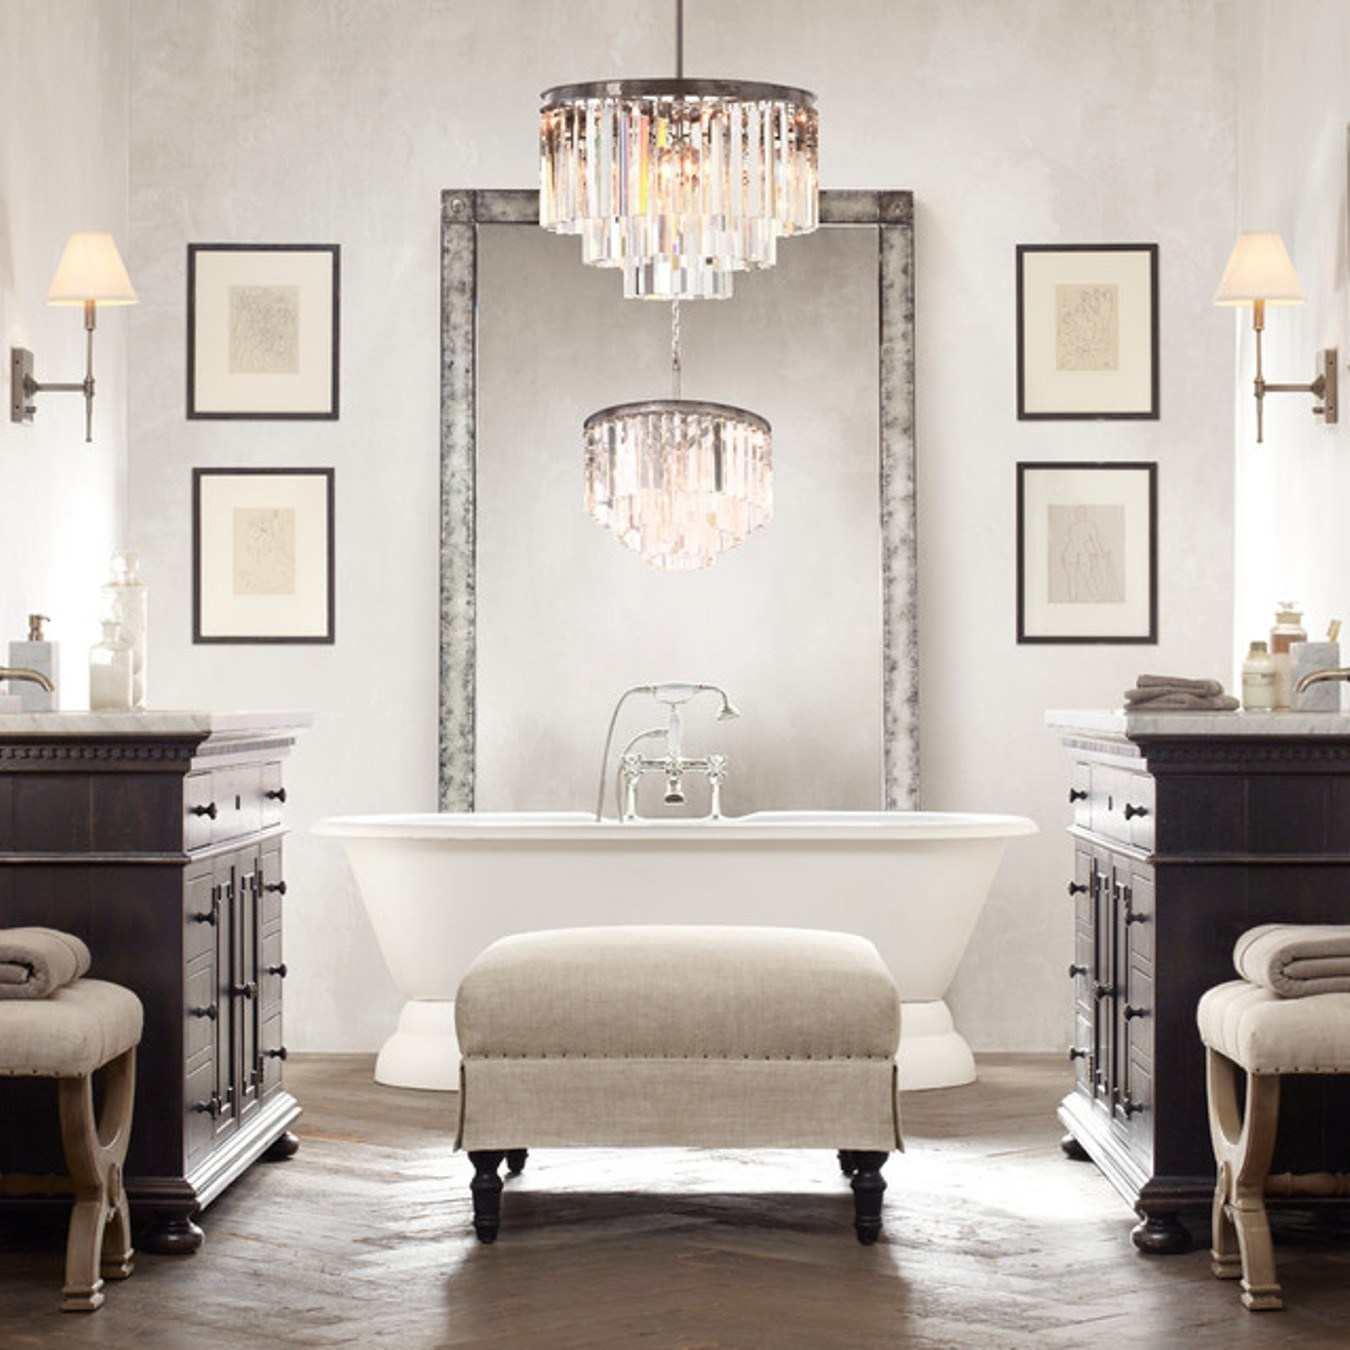 Popular Photo of Modern Bathroom Chandeliers